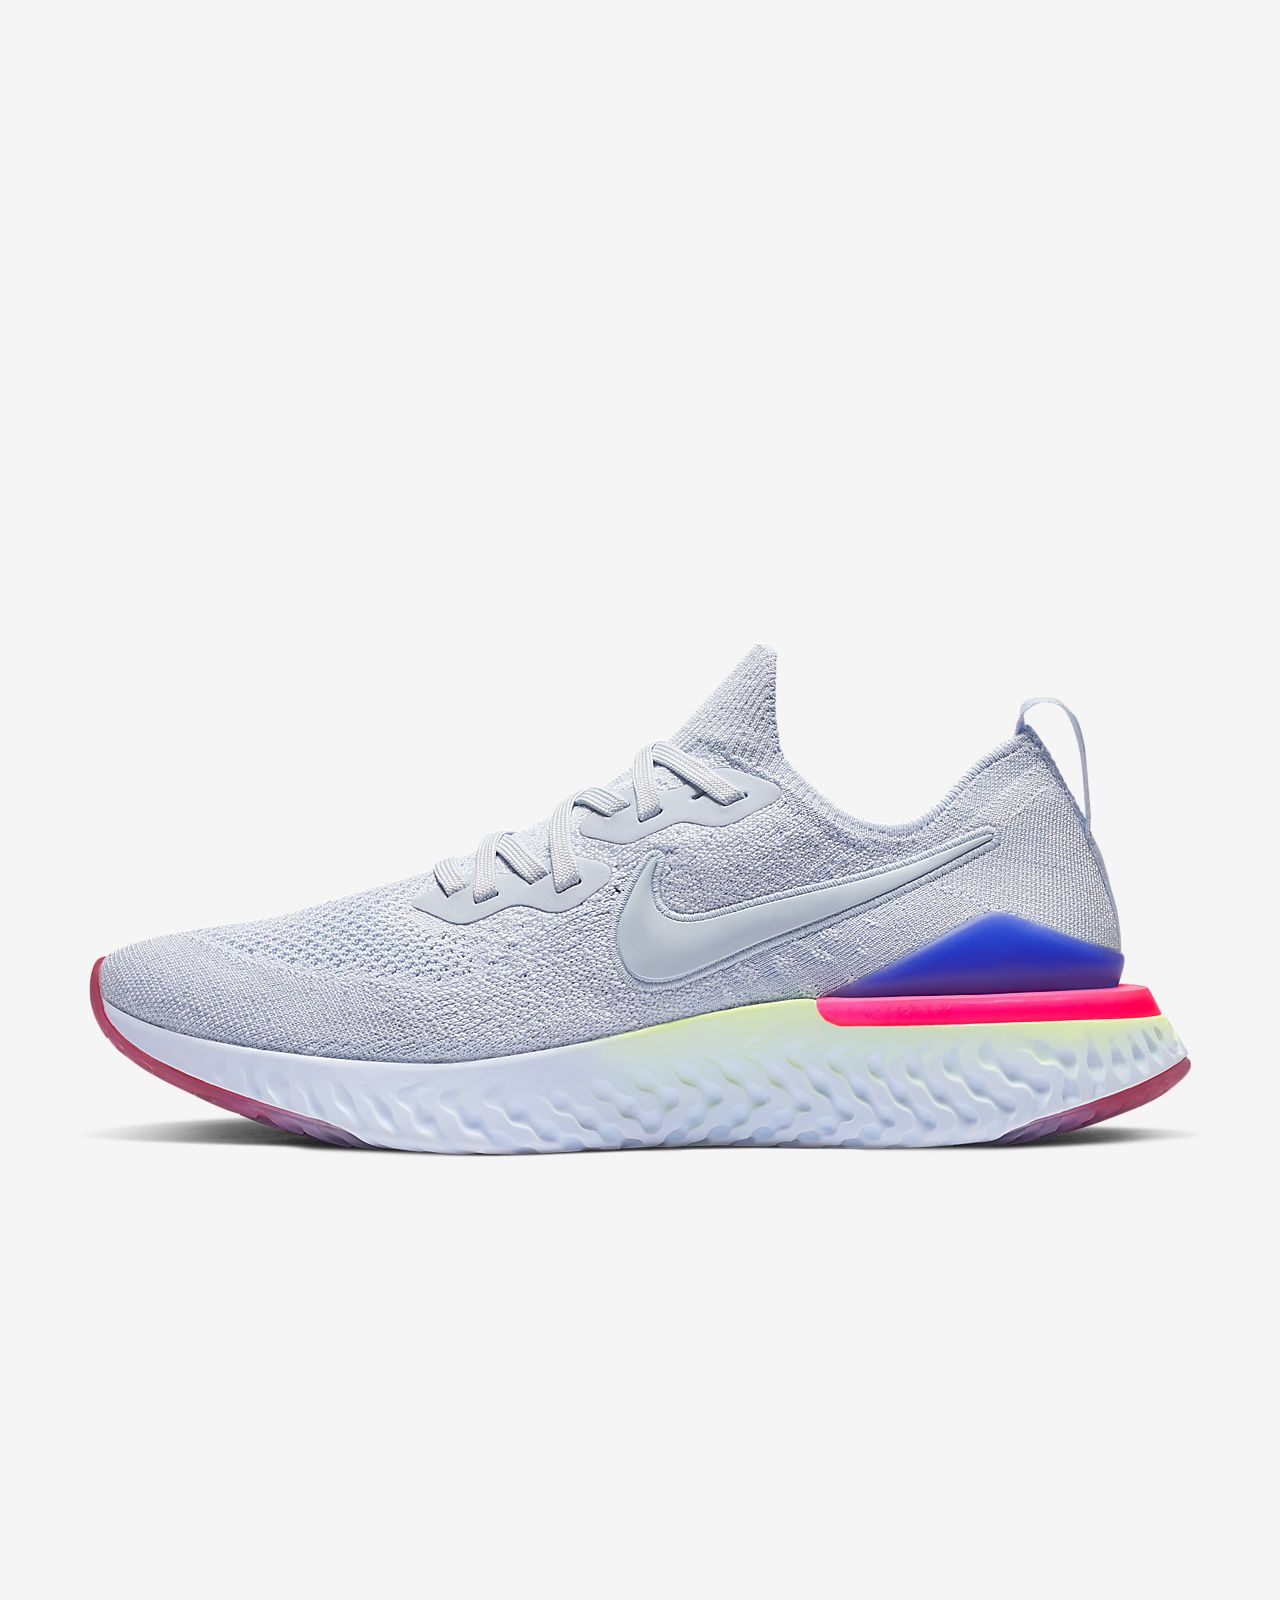 8ea9395def1a4 Chaussure de running Nike Epic React Flyknit 2 pour Femme. Nike.com CA